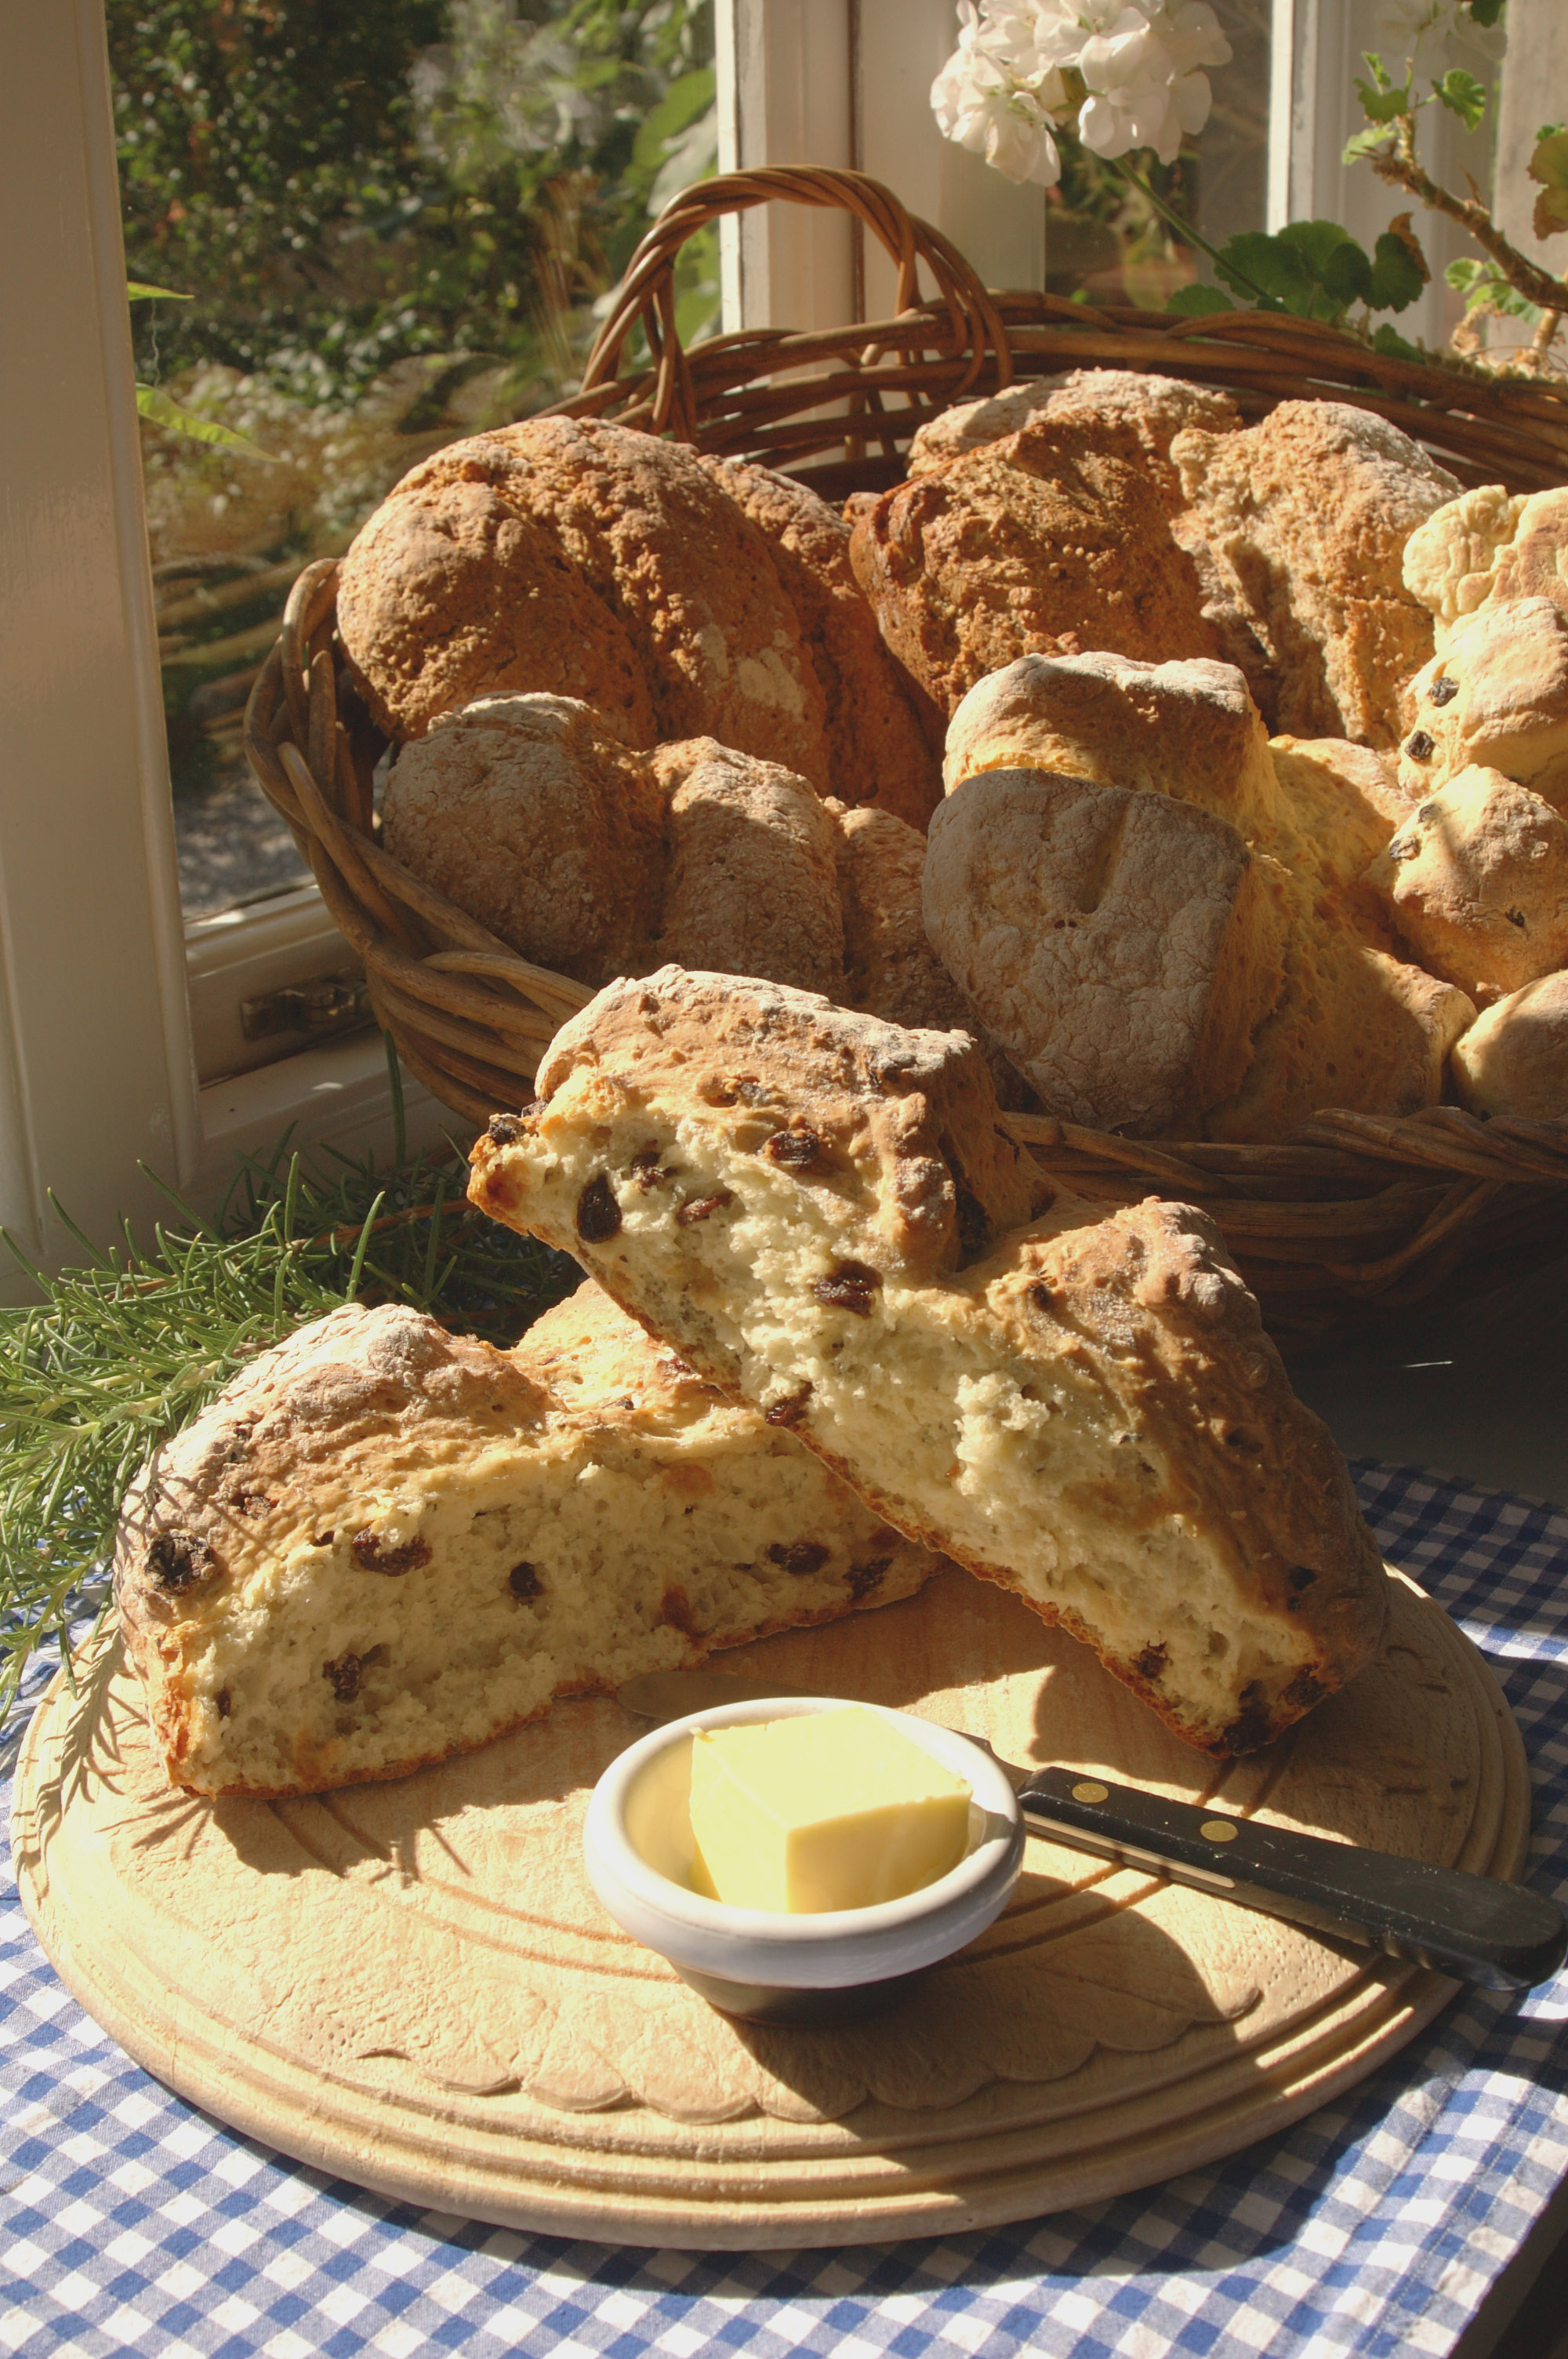 Ballymaloe Traditional Soda Bread